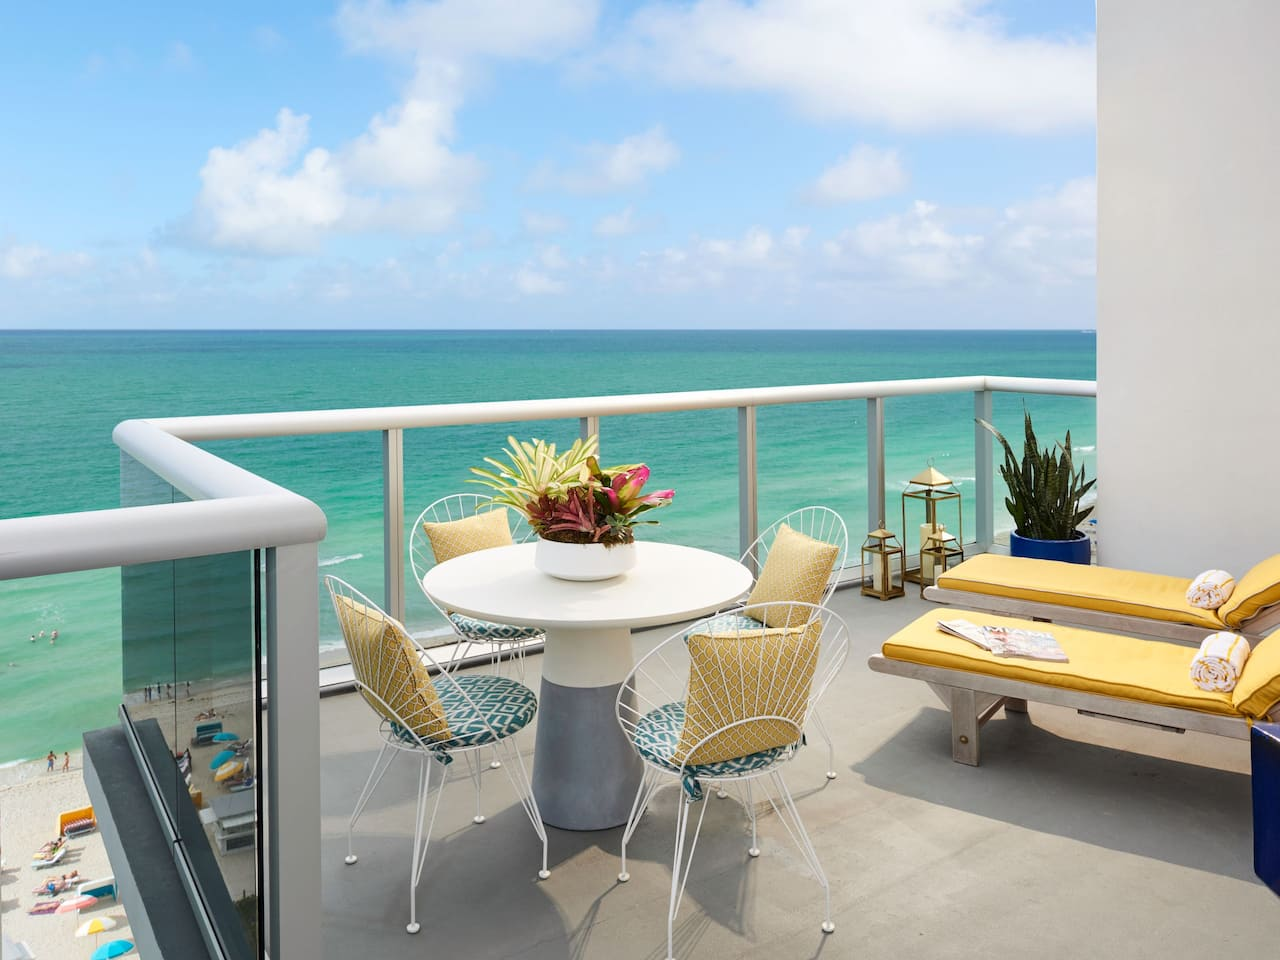 Hotel balcony near the ocean in Miami